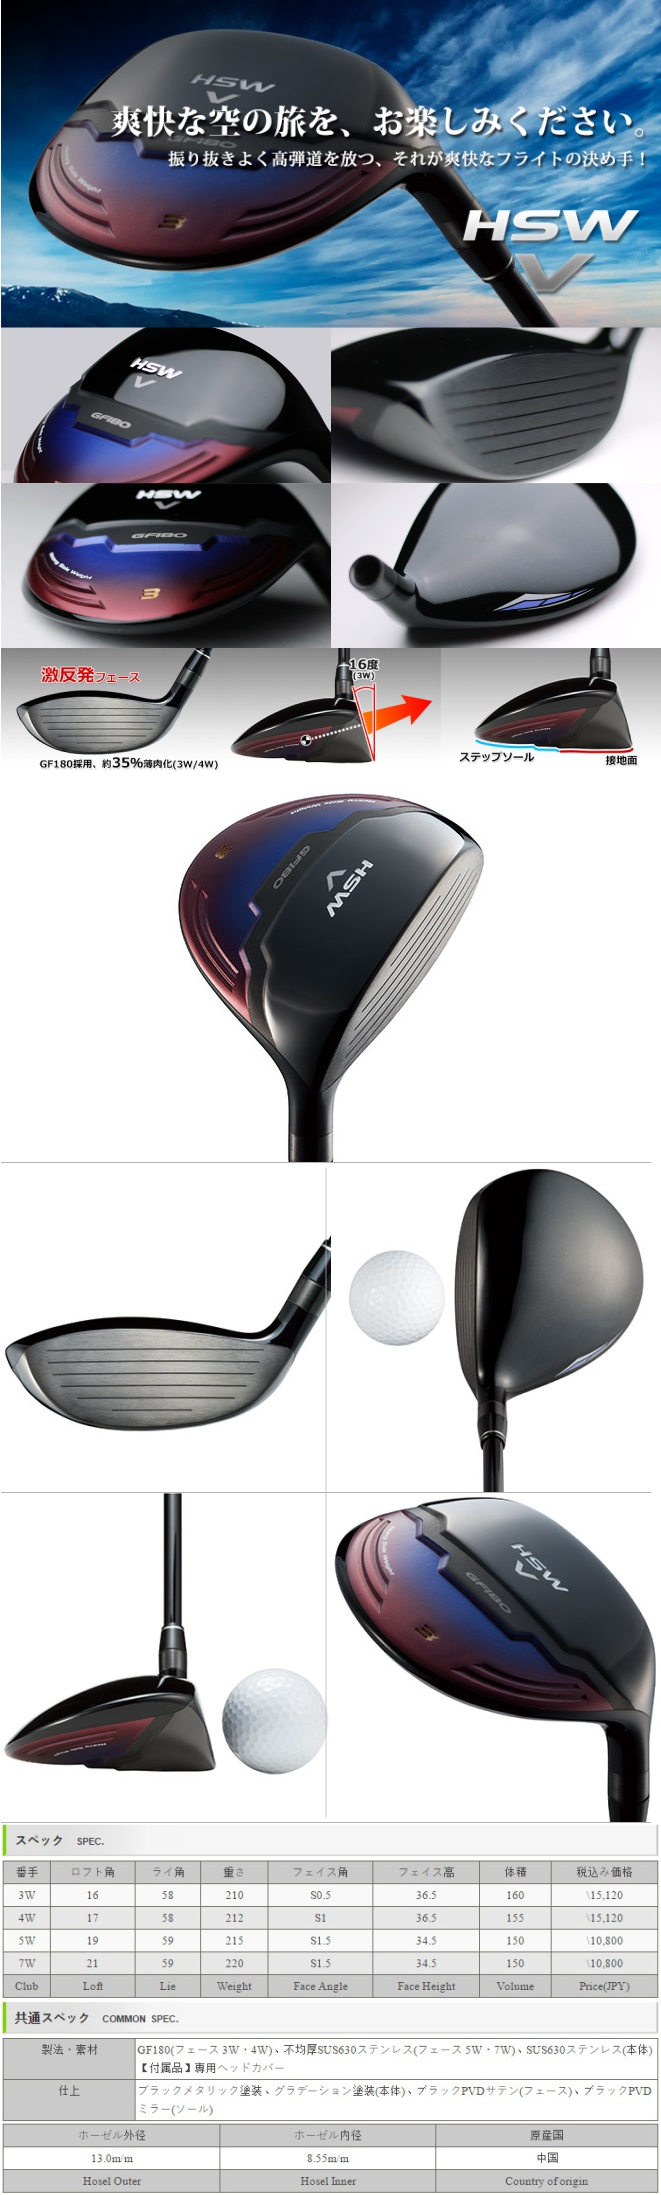 Geotech HSW-V Fairway Wood